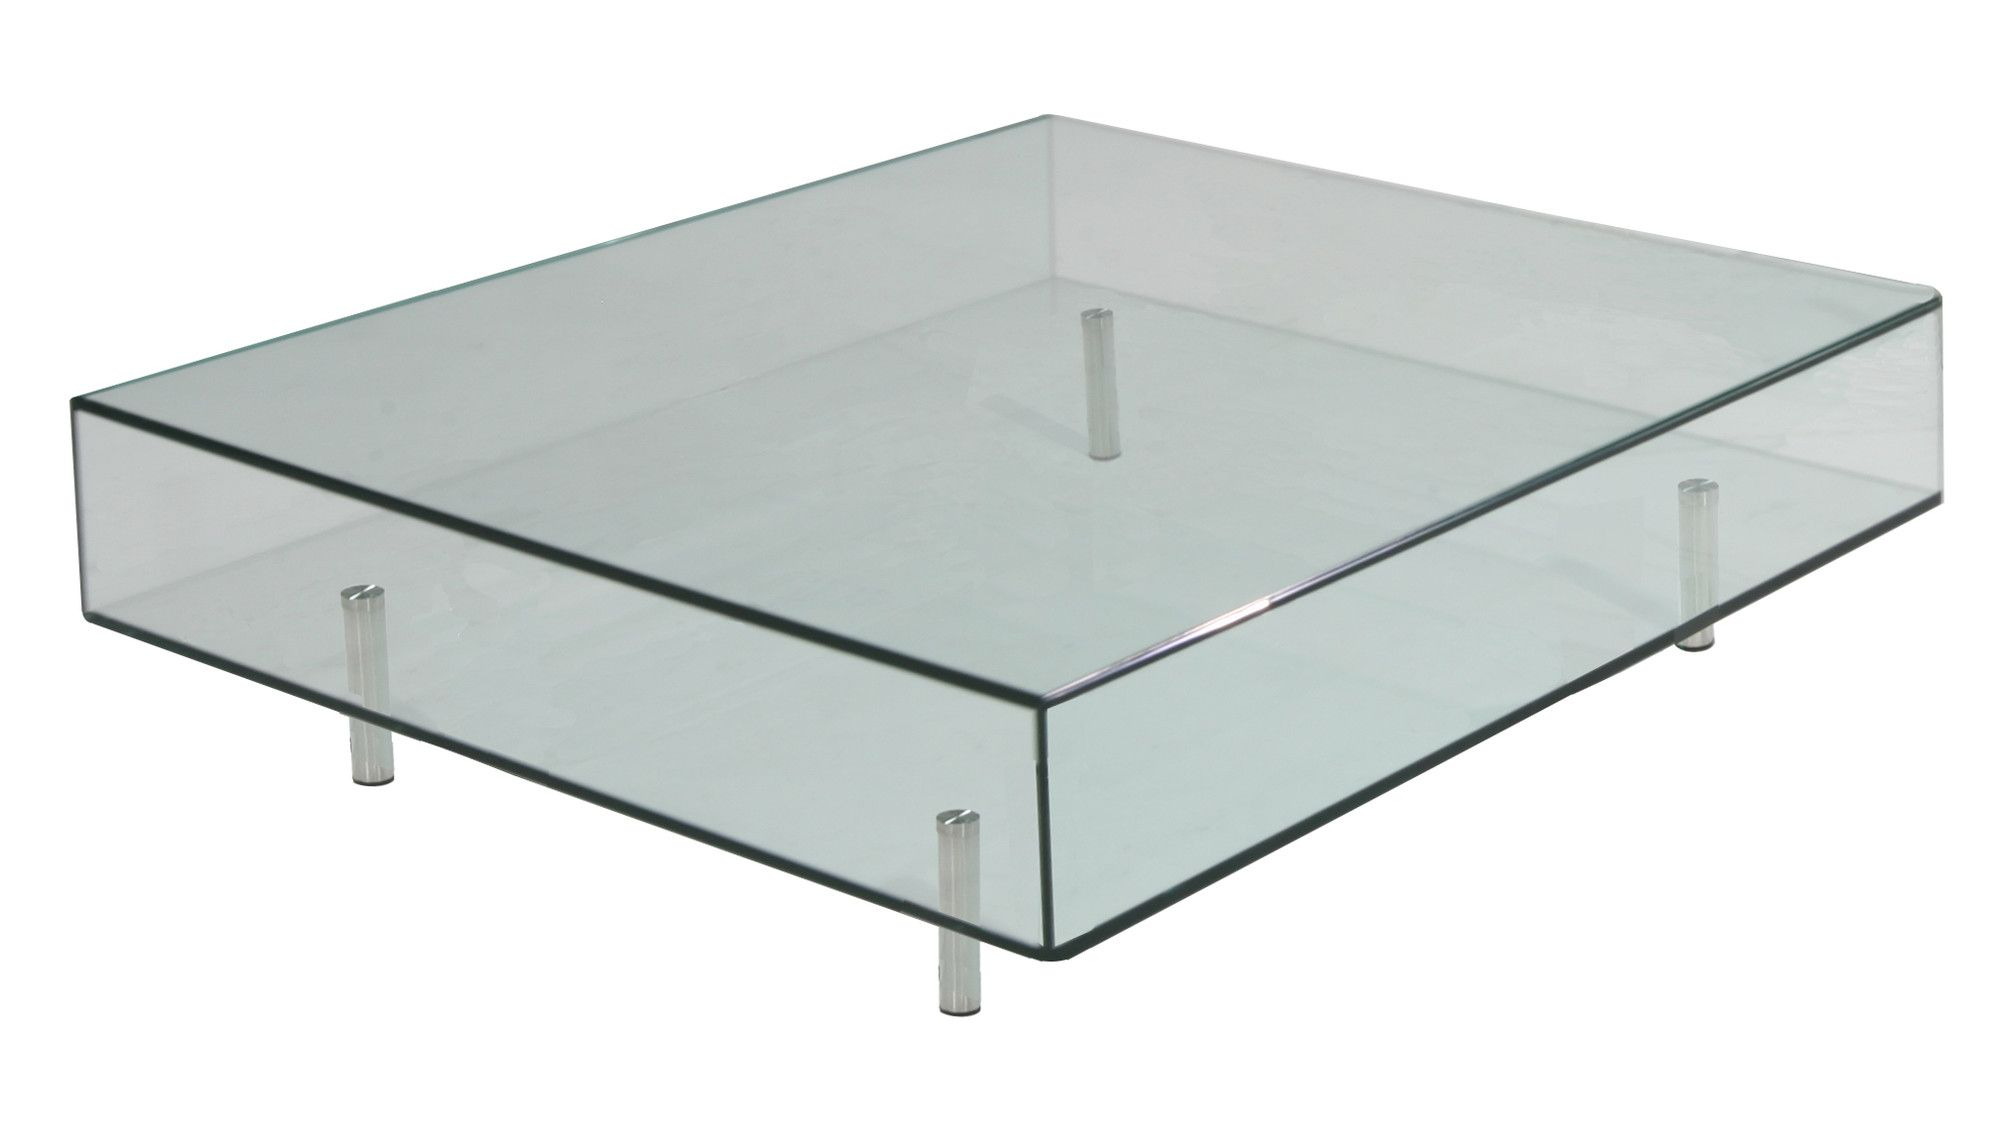 Focus One Home Arron Square Coffee Table Reviews Wayfair Coffee Table Square Coffee Table Coffee Table Size